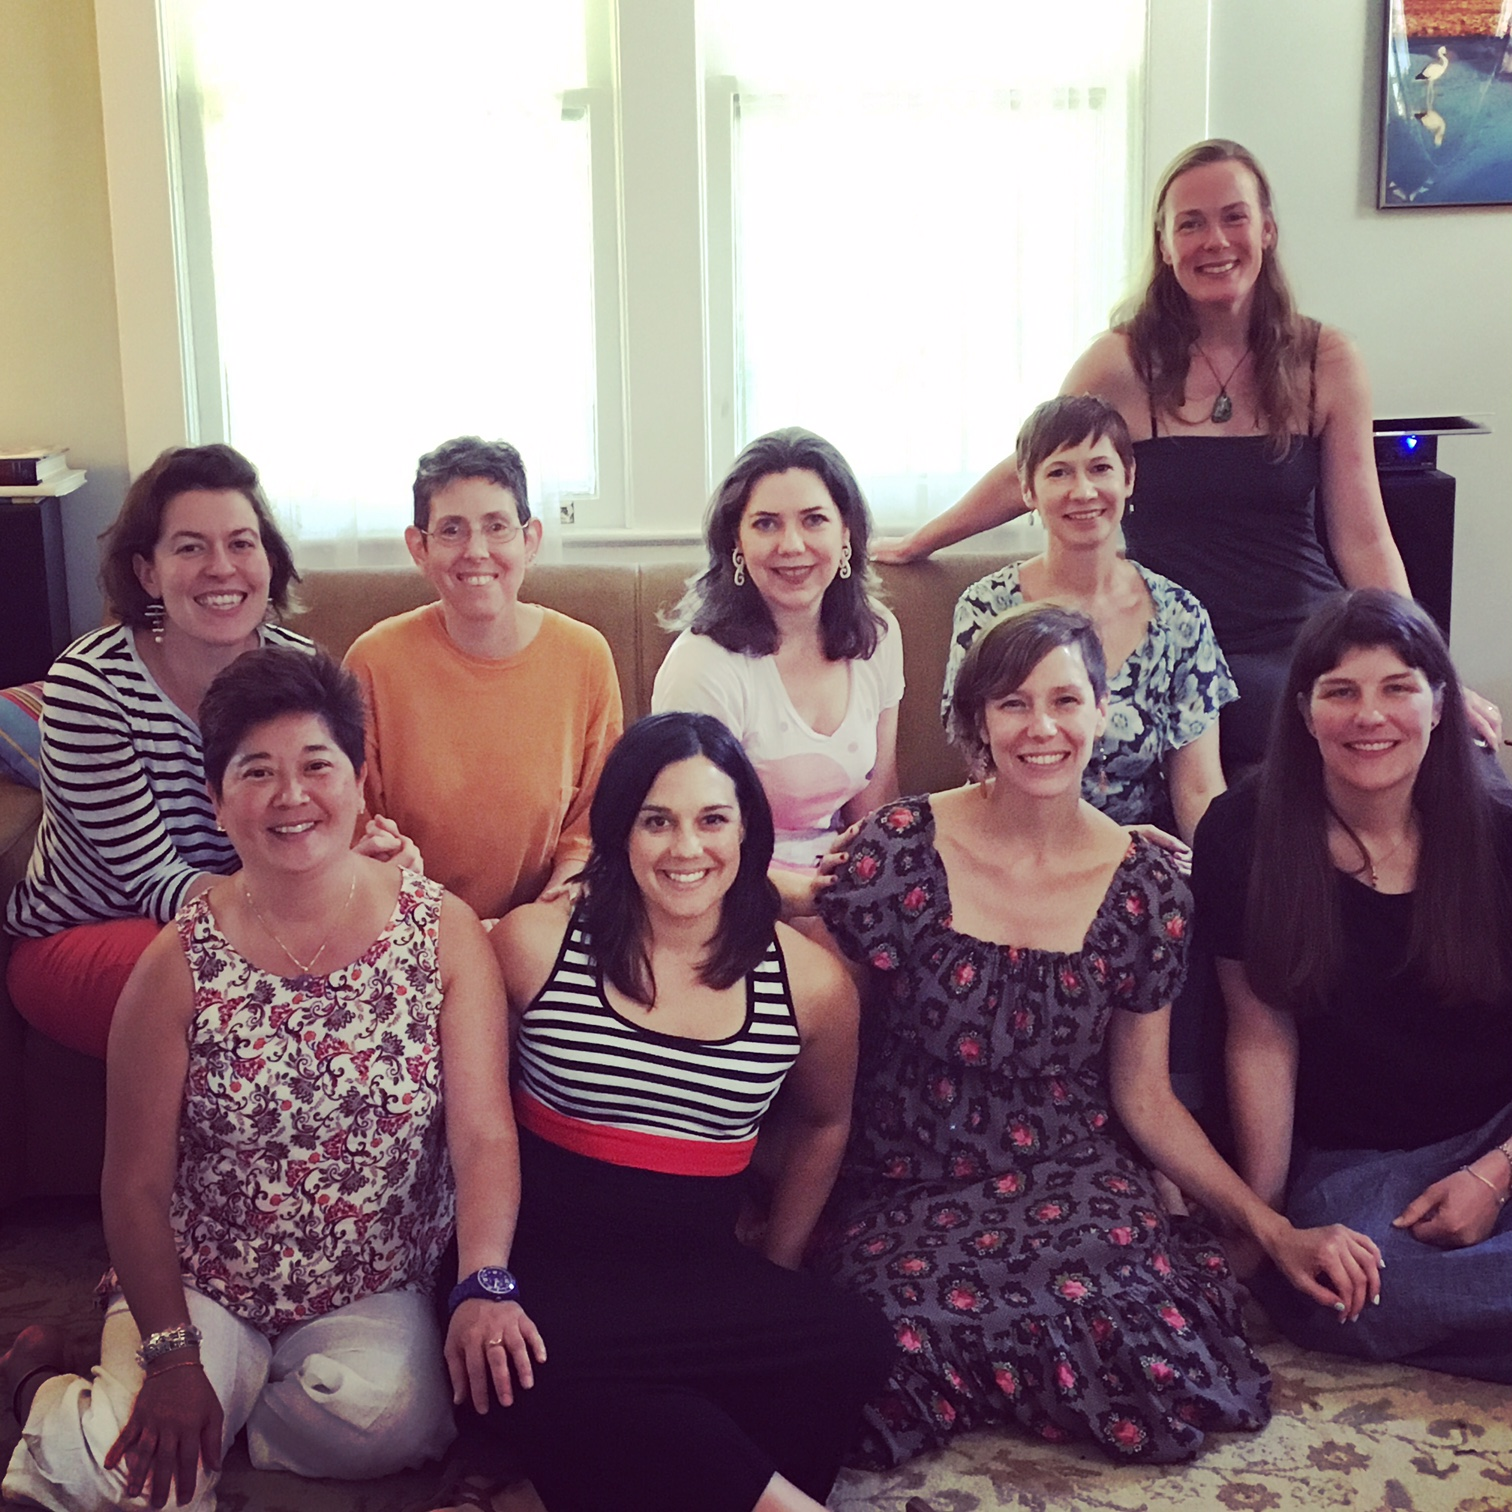 Last Saturday I got to brunch with this amazing crew of Self Care 101 Alumni. There are four different classes represented here. Some of the ladies had never met but we all chatted like dear friends. This is what a tribe is all about! Even if we don't know each other, we still know each other. <3